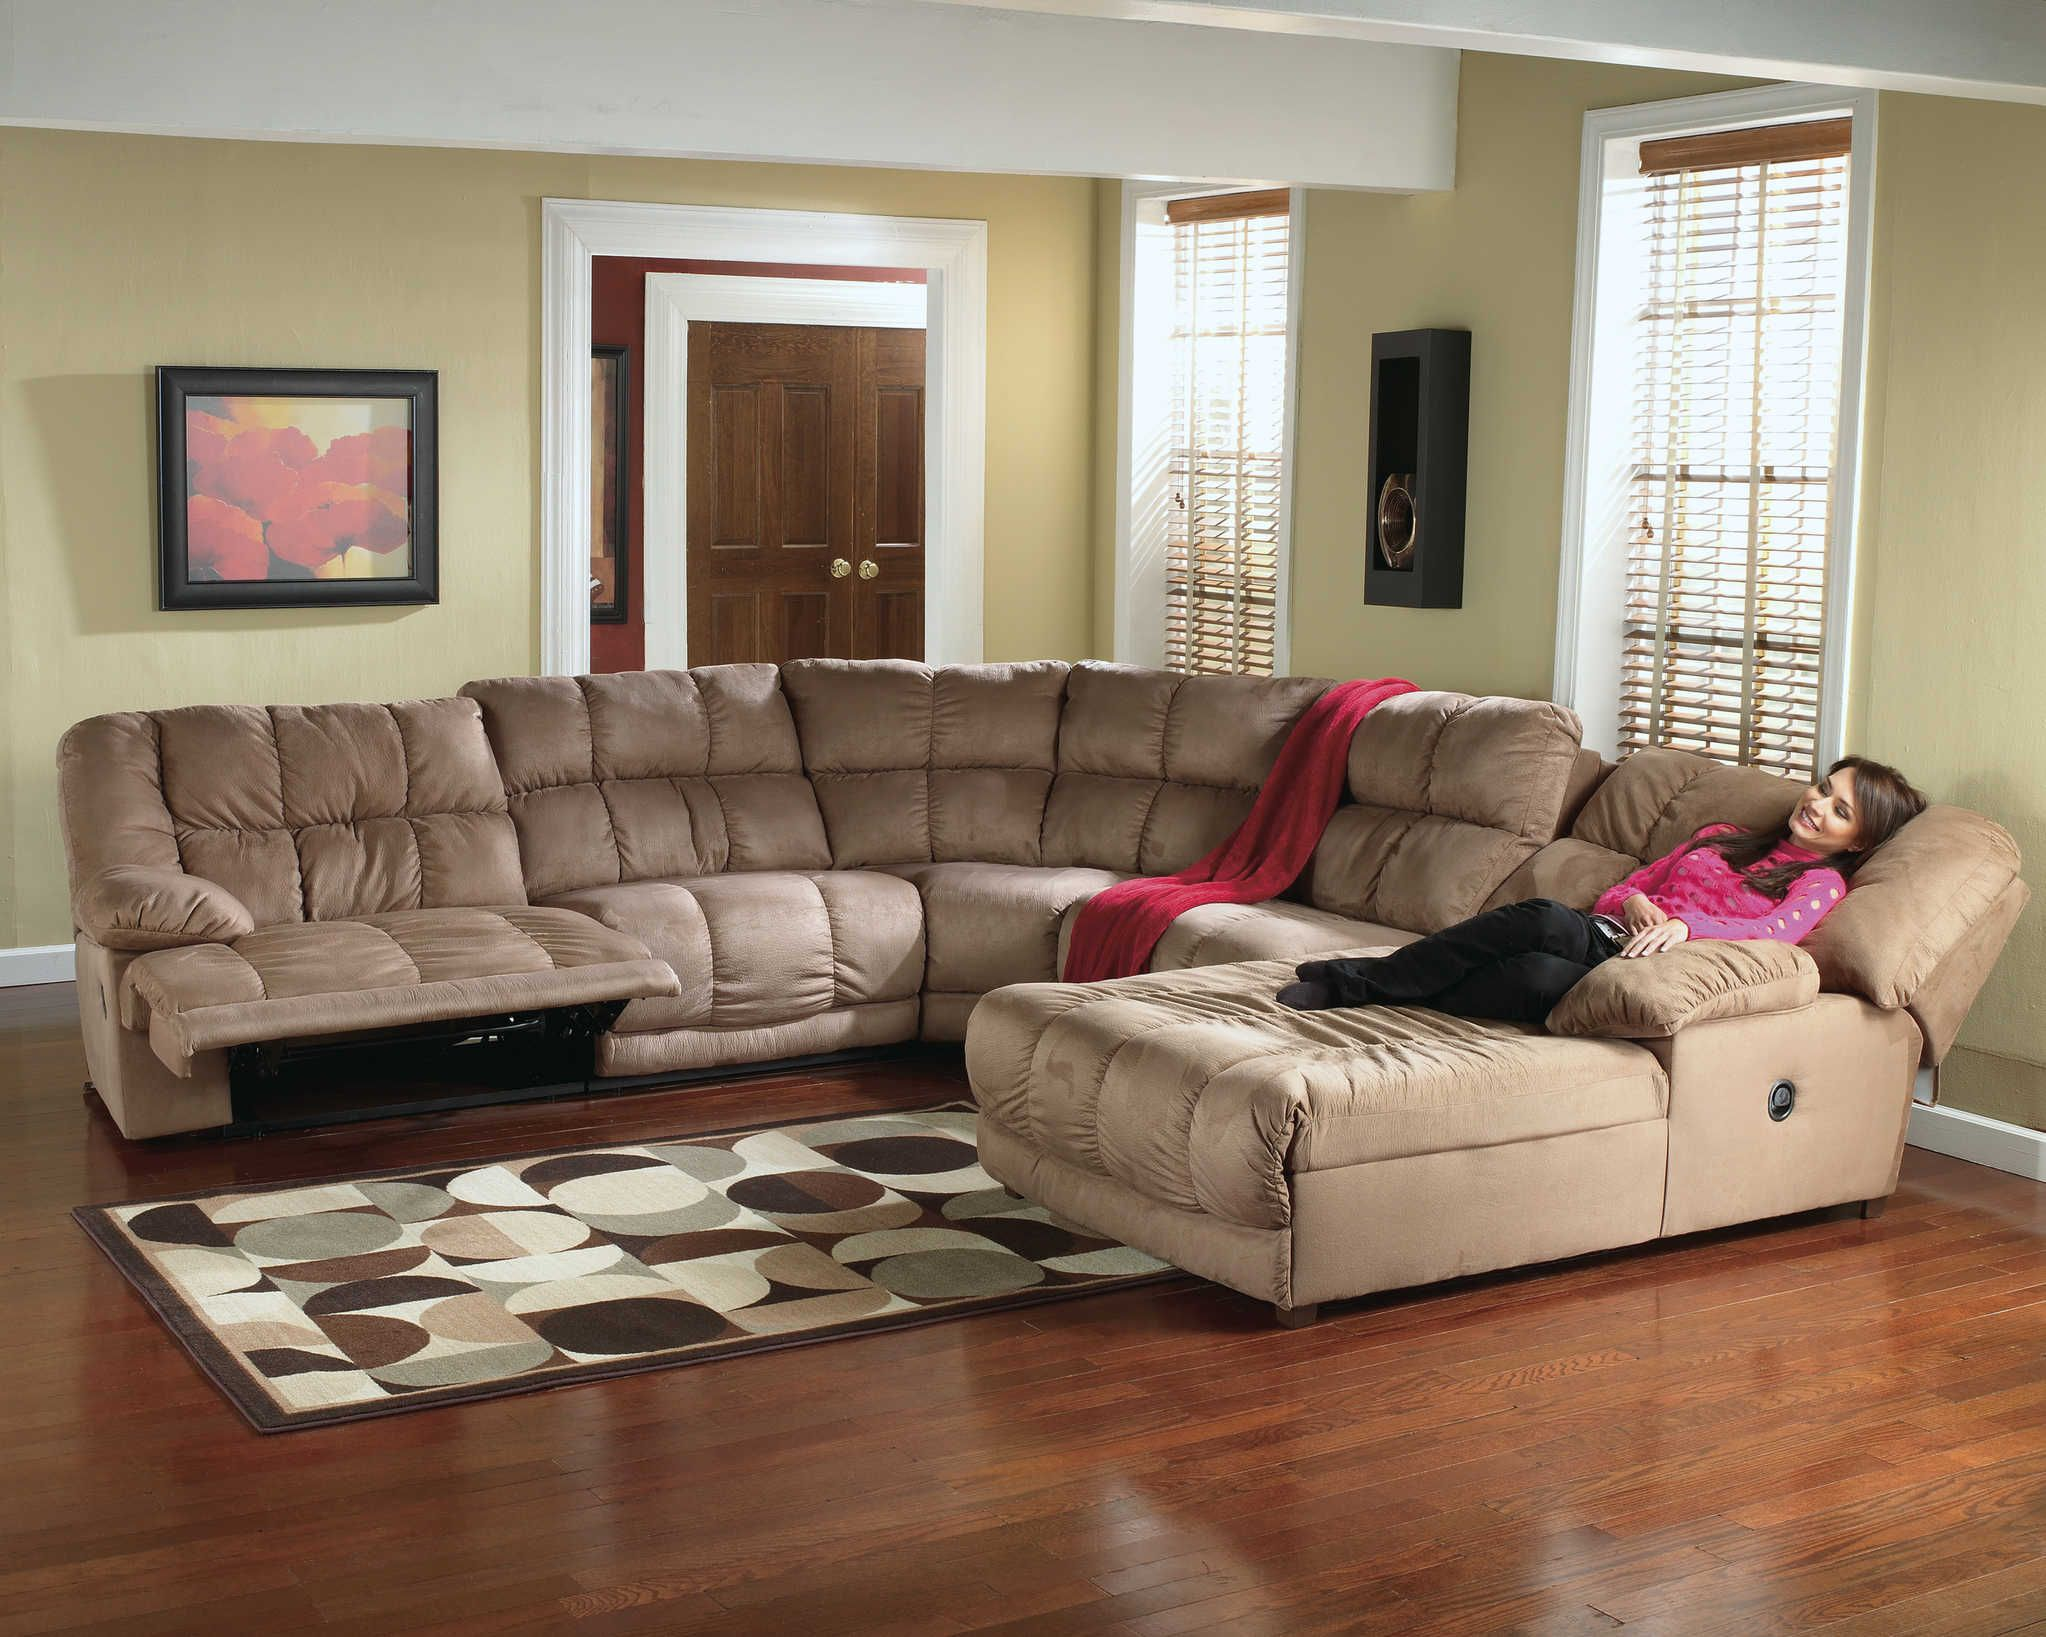 Living Room Sets Recliners microfiber recliner sectional | sectional sofa | recliner chaise